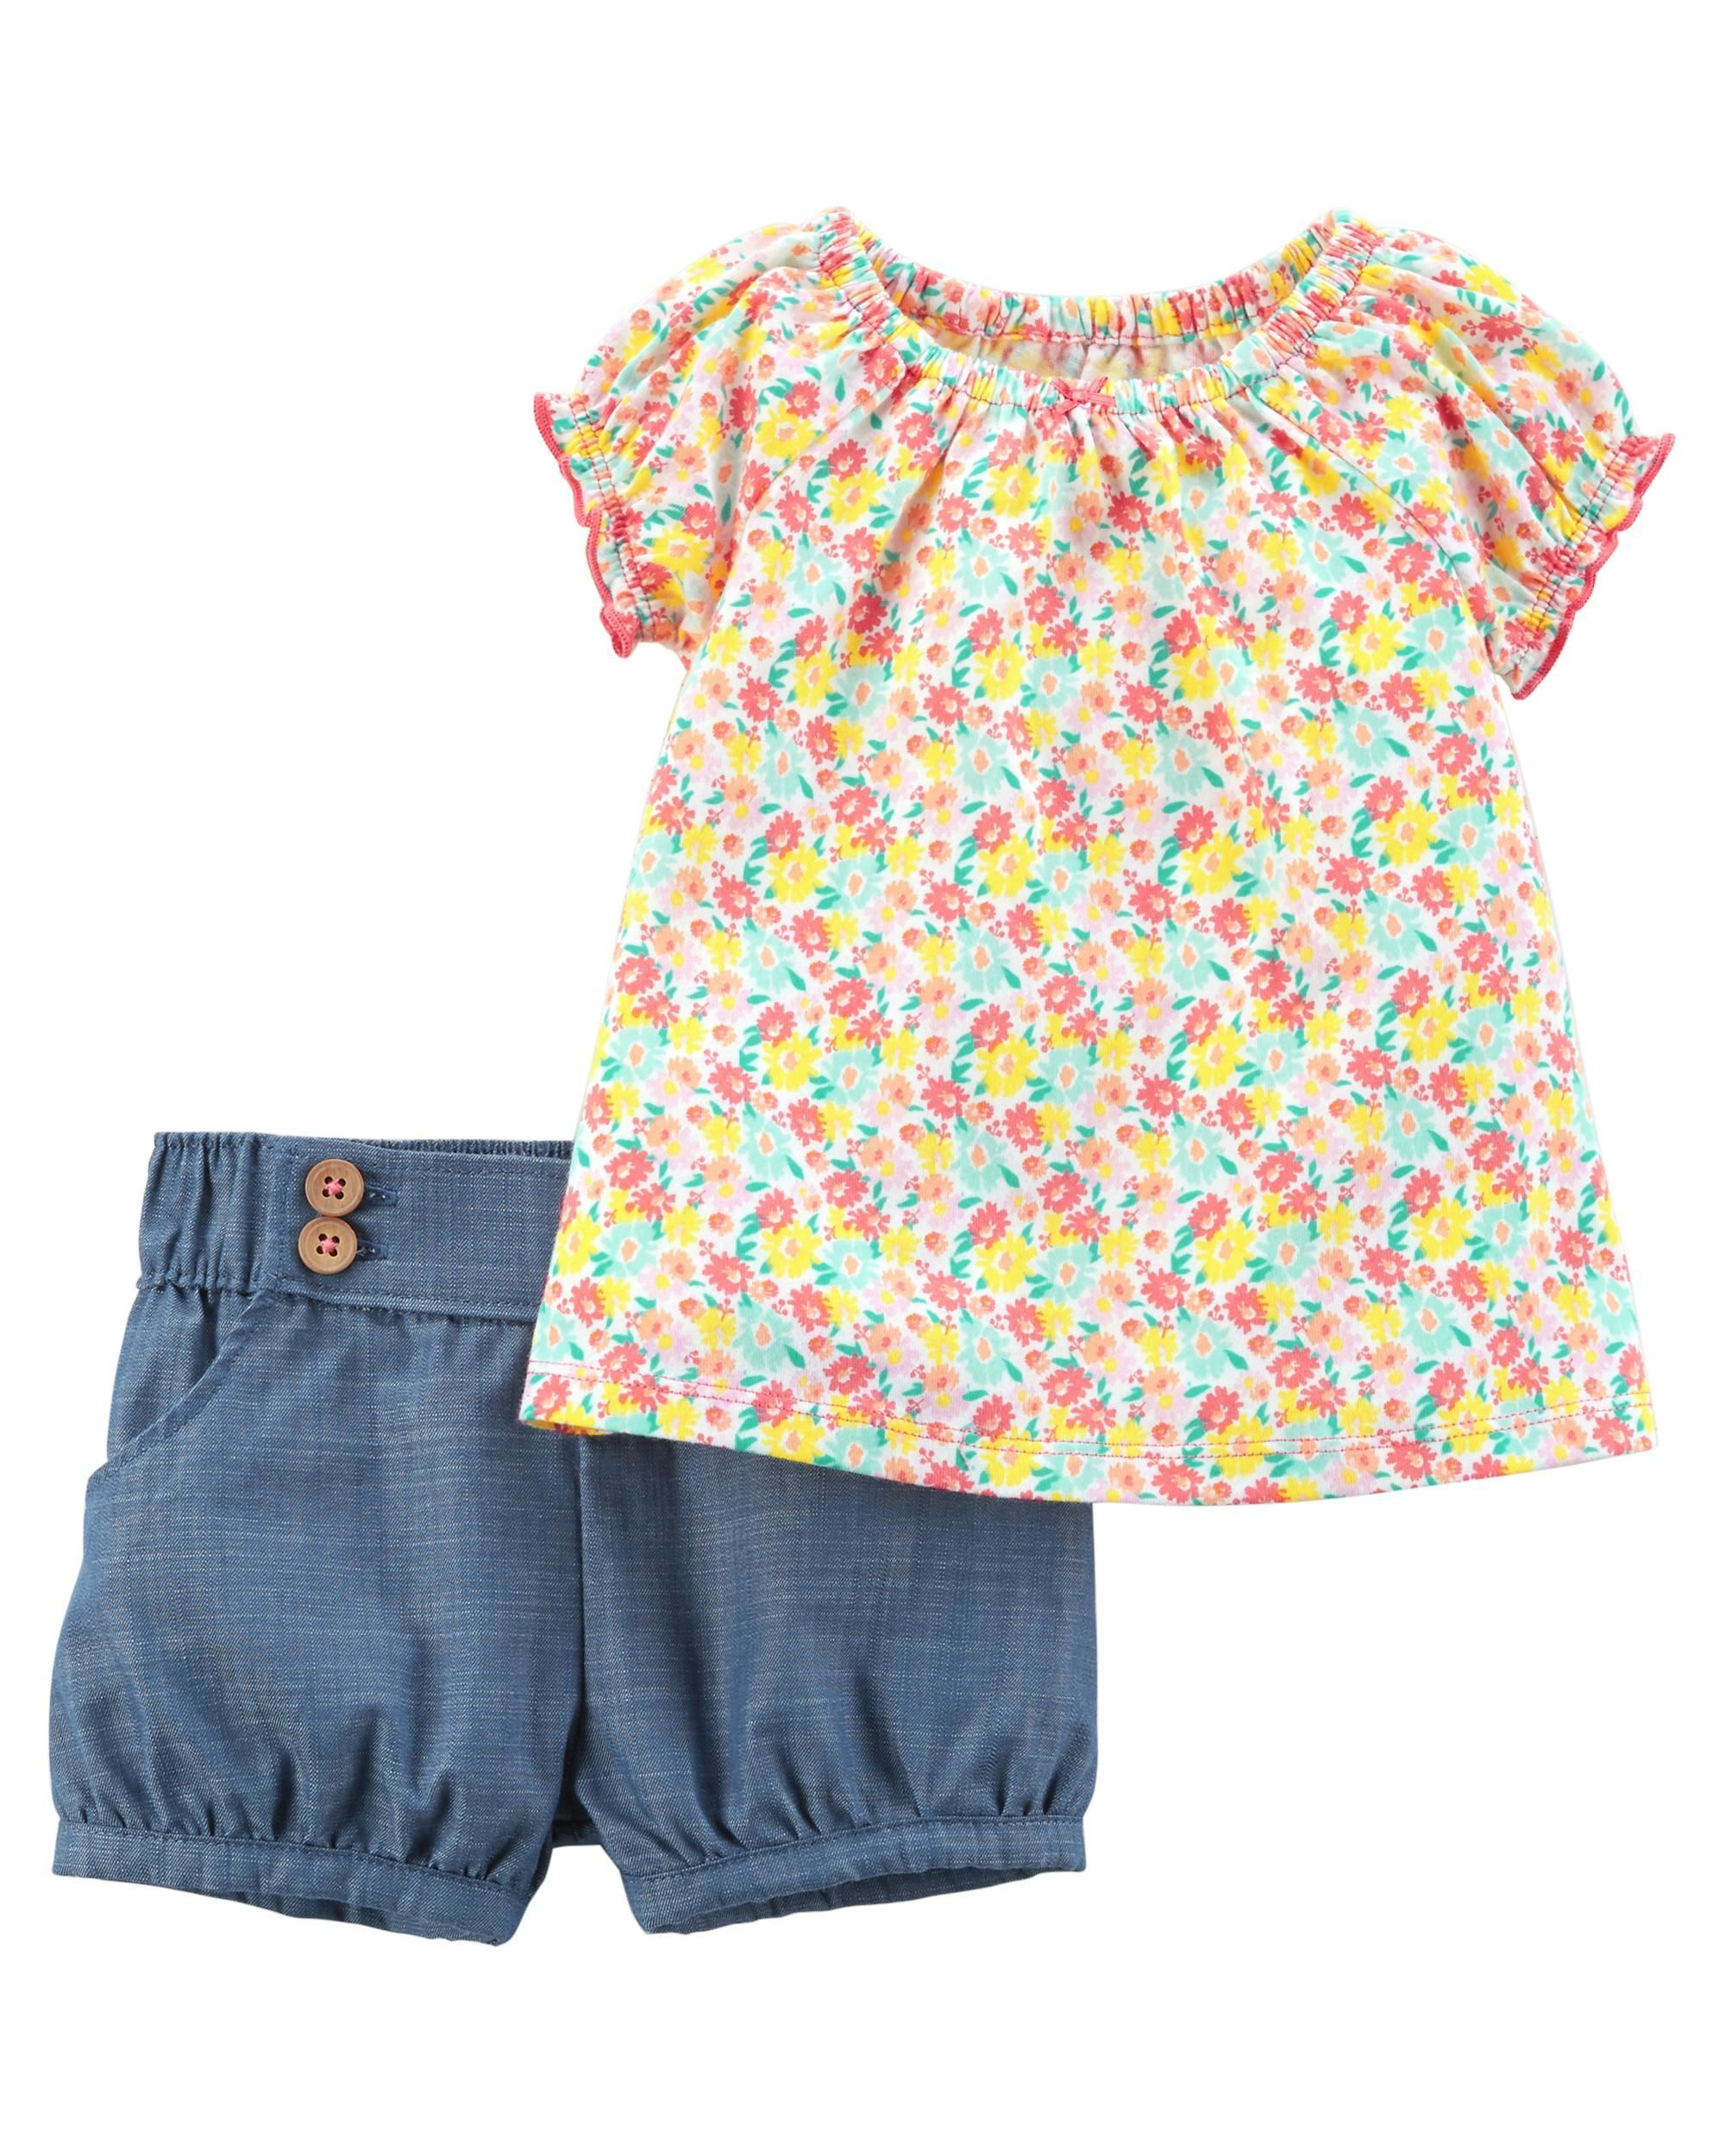 Girls Shorts Set with Belt Floral top for Kids Toddlers Turkish Clothes